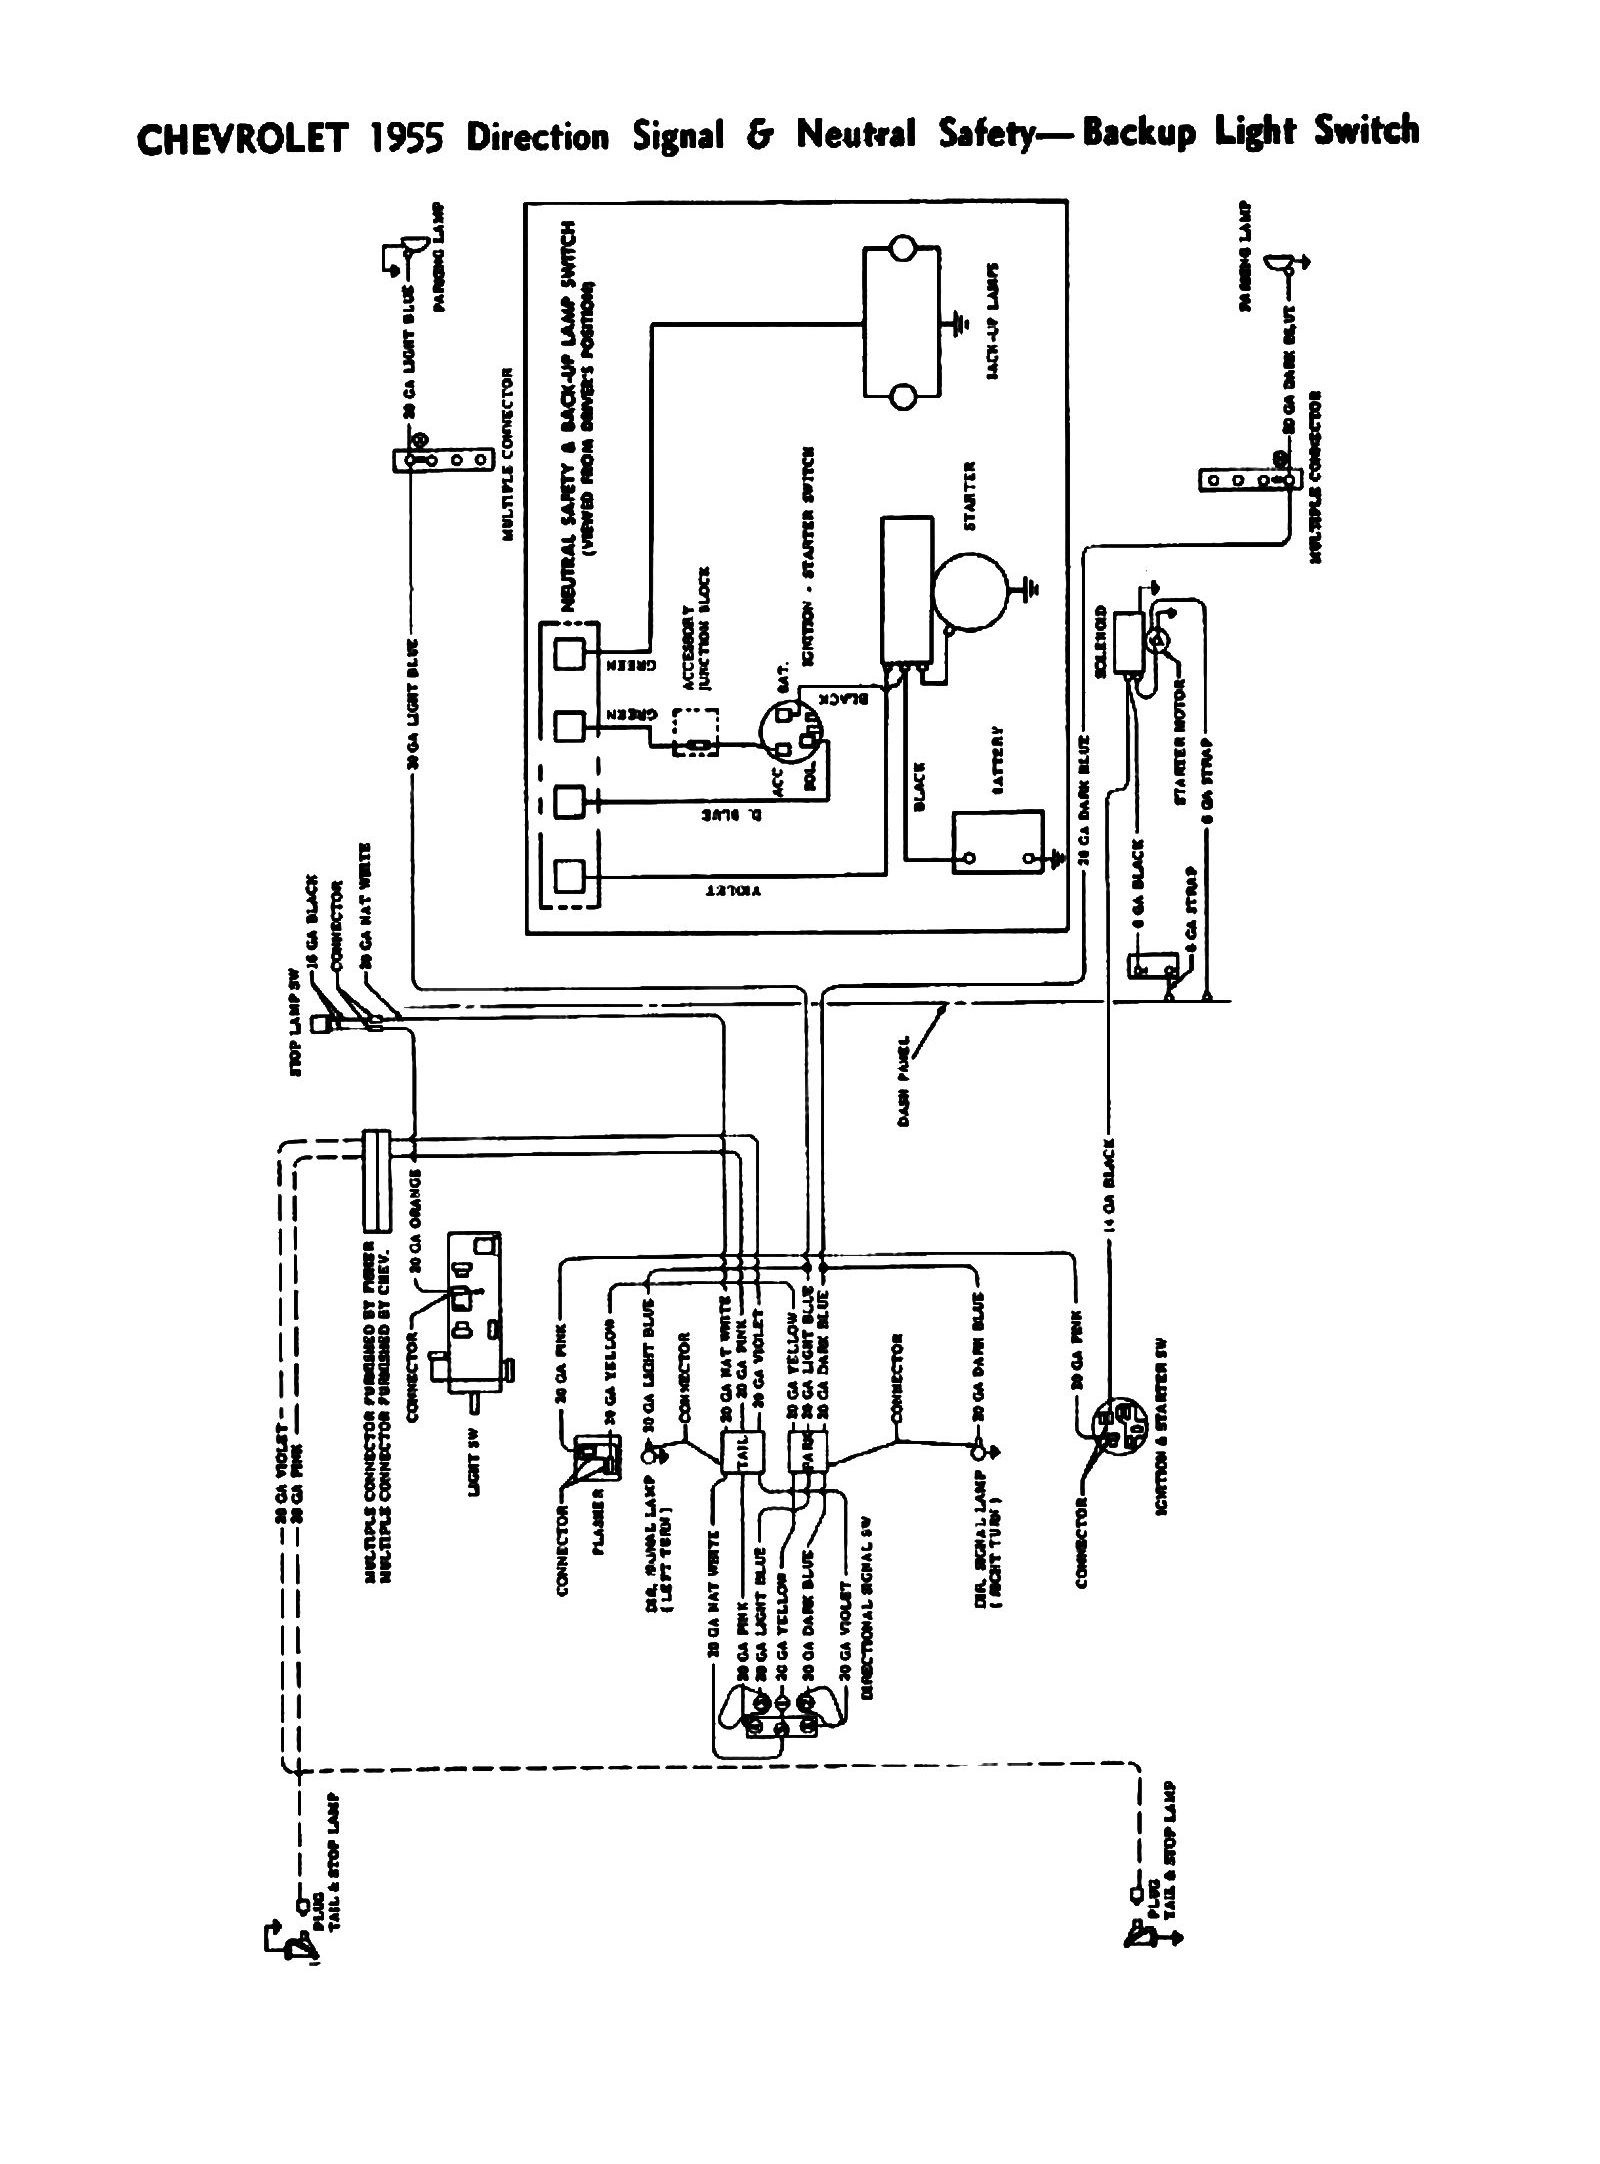 1957 chevy heater wiring diagram electrical work wiring diagram u2022 rh wiringdiagramshop today Electric Water Heater Wiring Diagram Heater Wiring Diagram